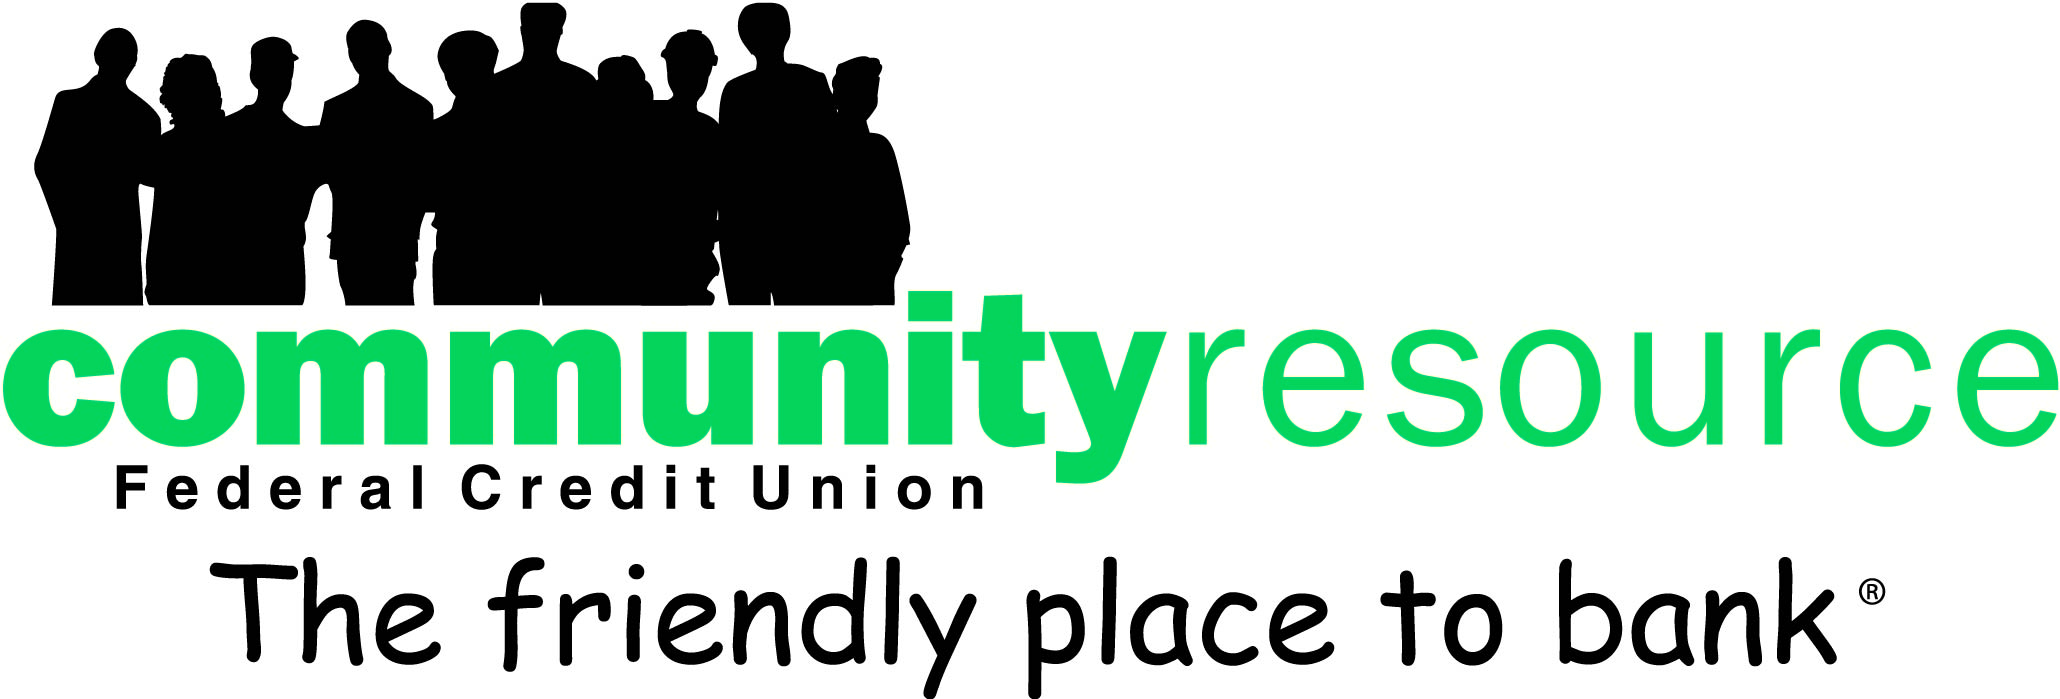 Community Resource Federal Credit Union